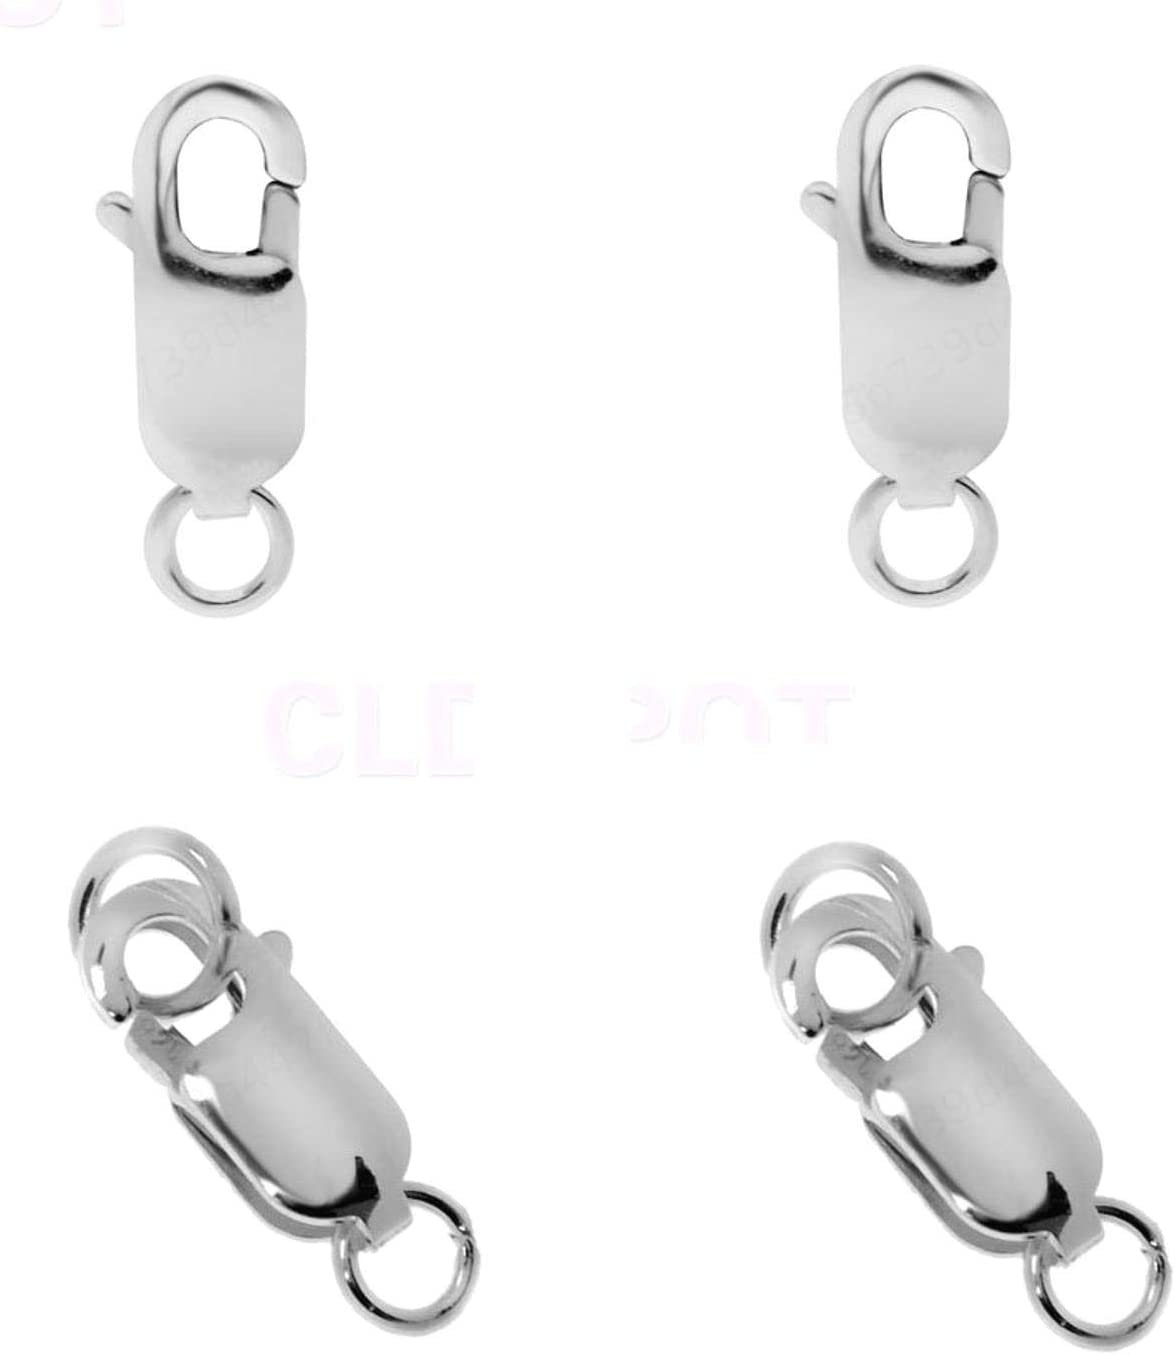 1PC 925 Sterling Silver Lobster Clasp Clip Double Circle Bijoux Fermoirs